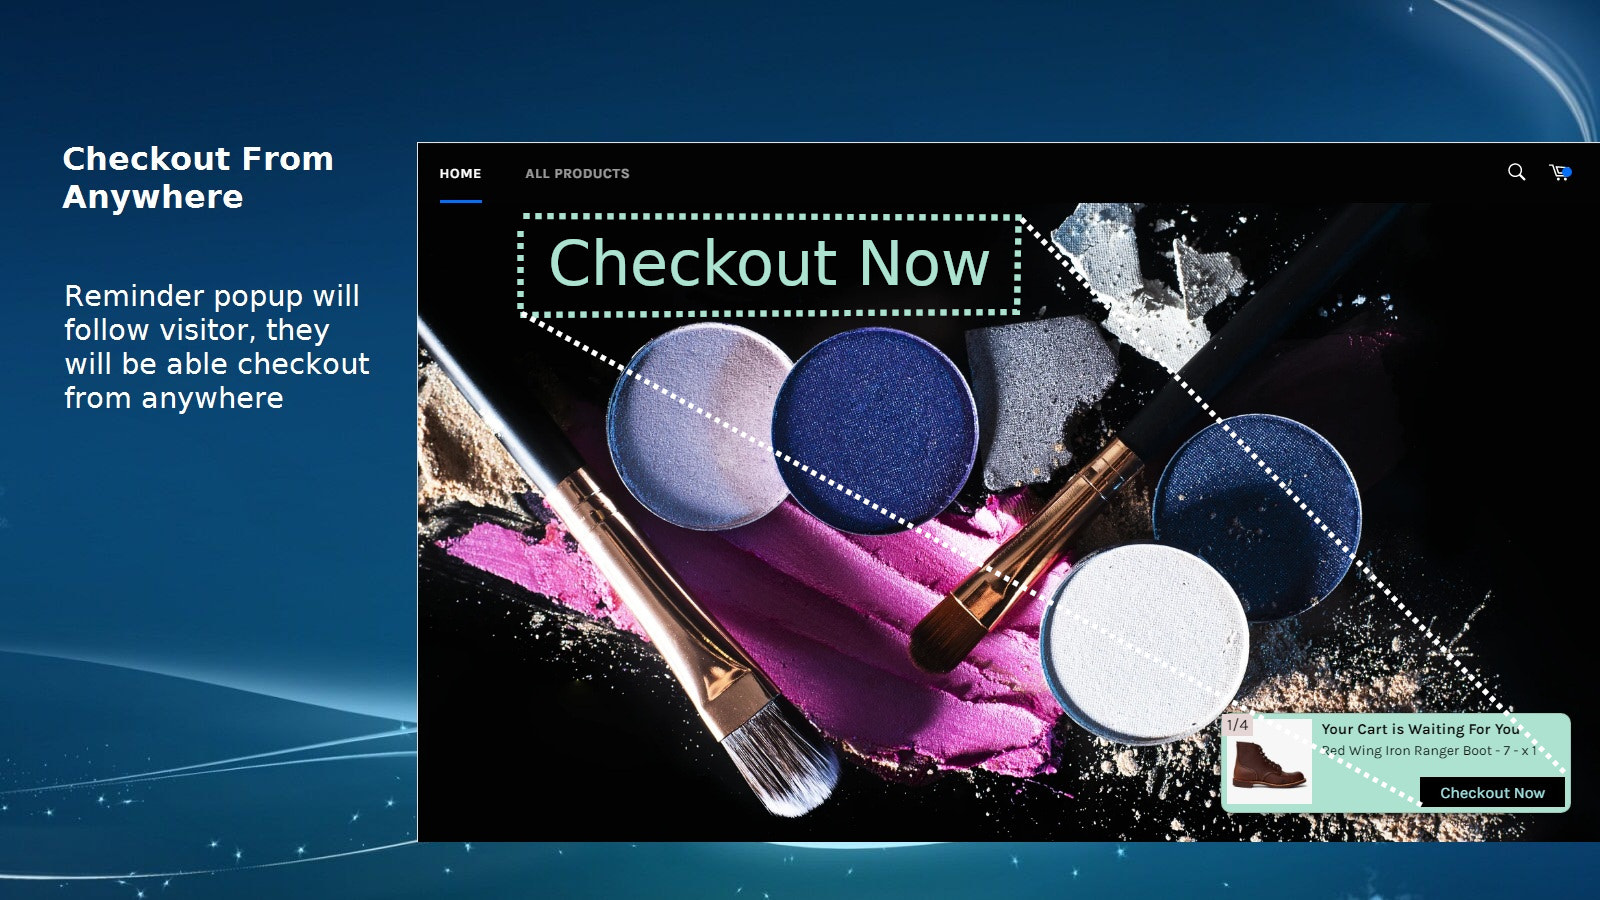 Instant checkout